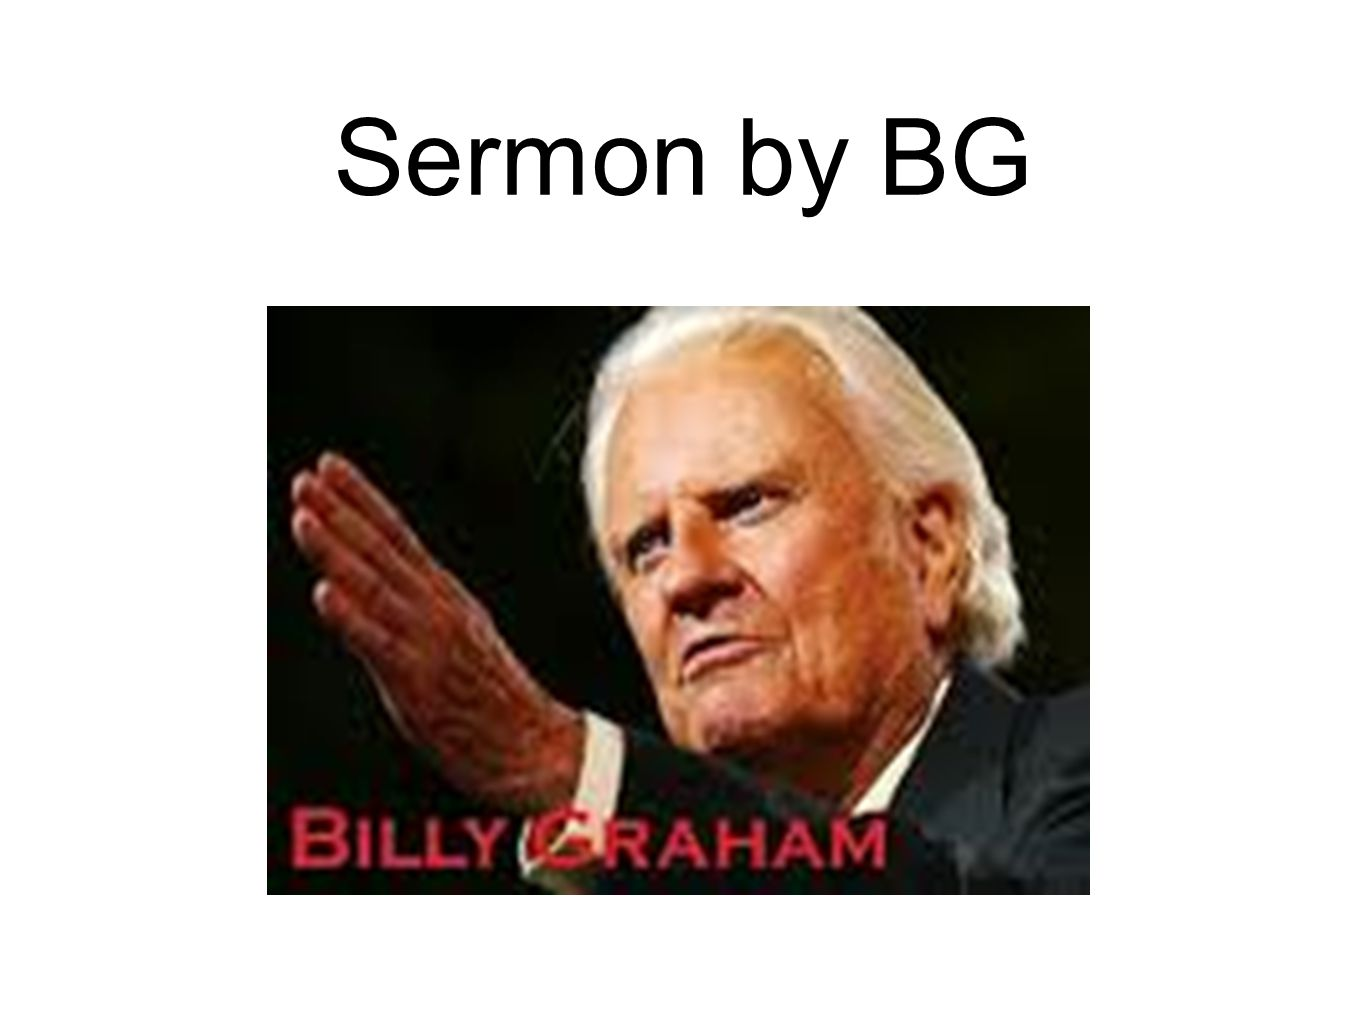 Sermon by BG